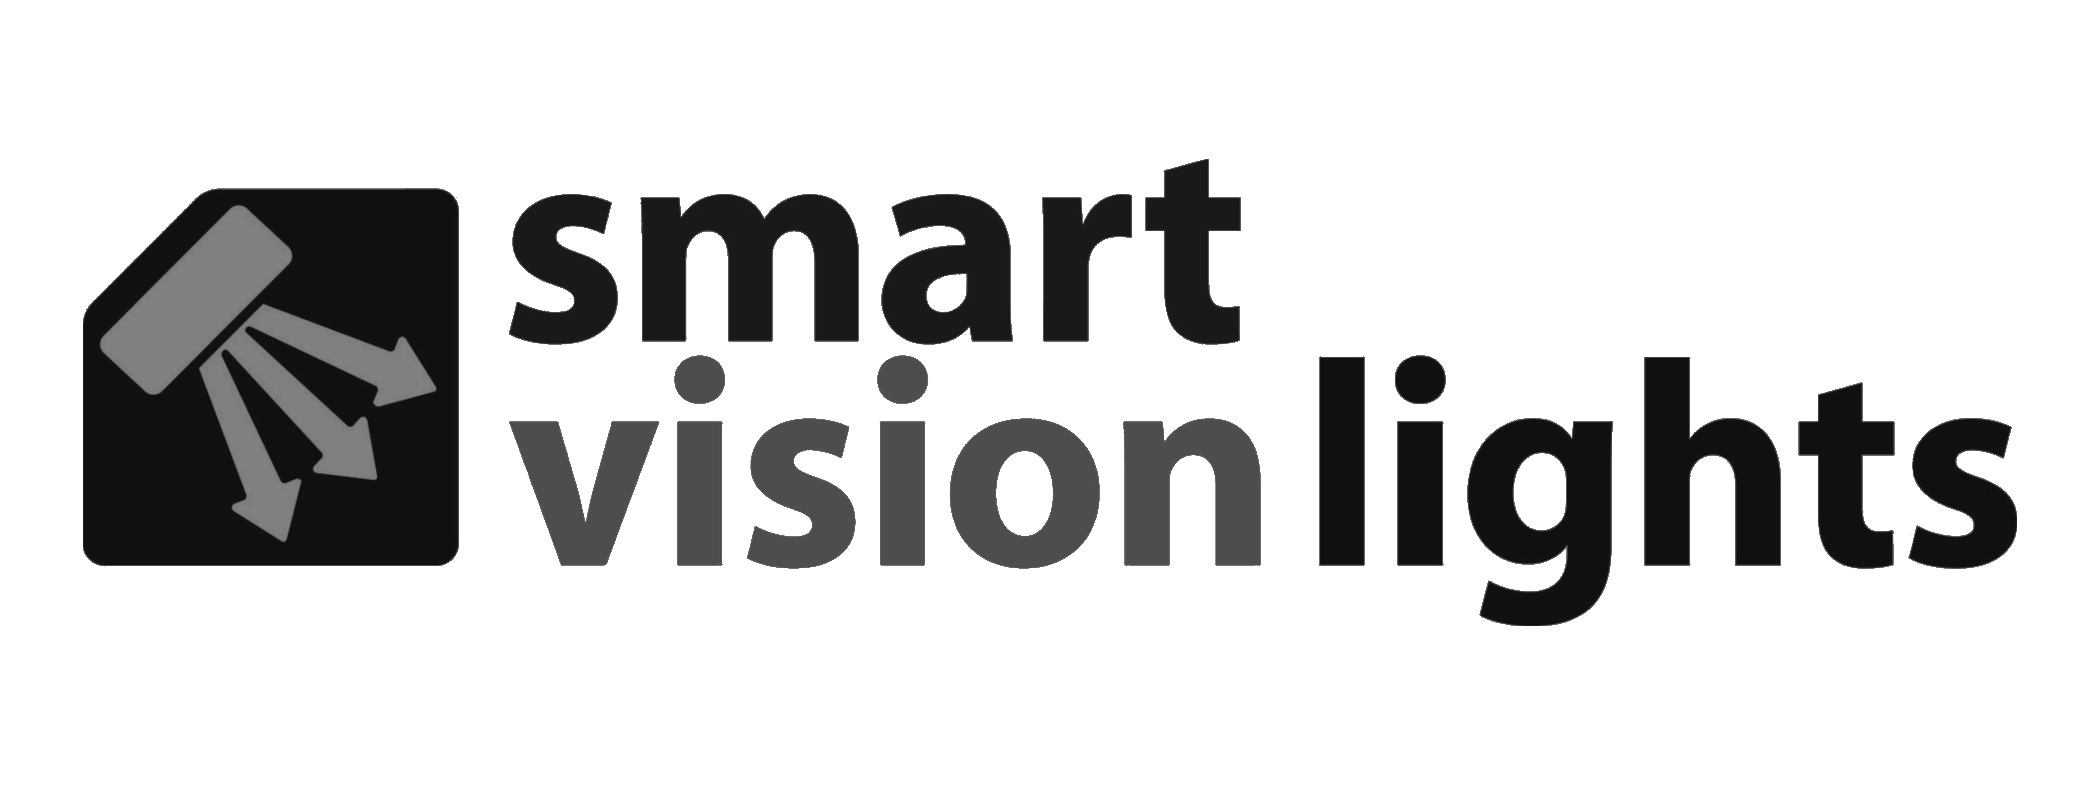 Smart Vision Lights Transp